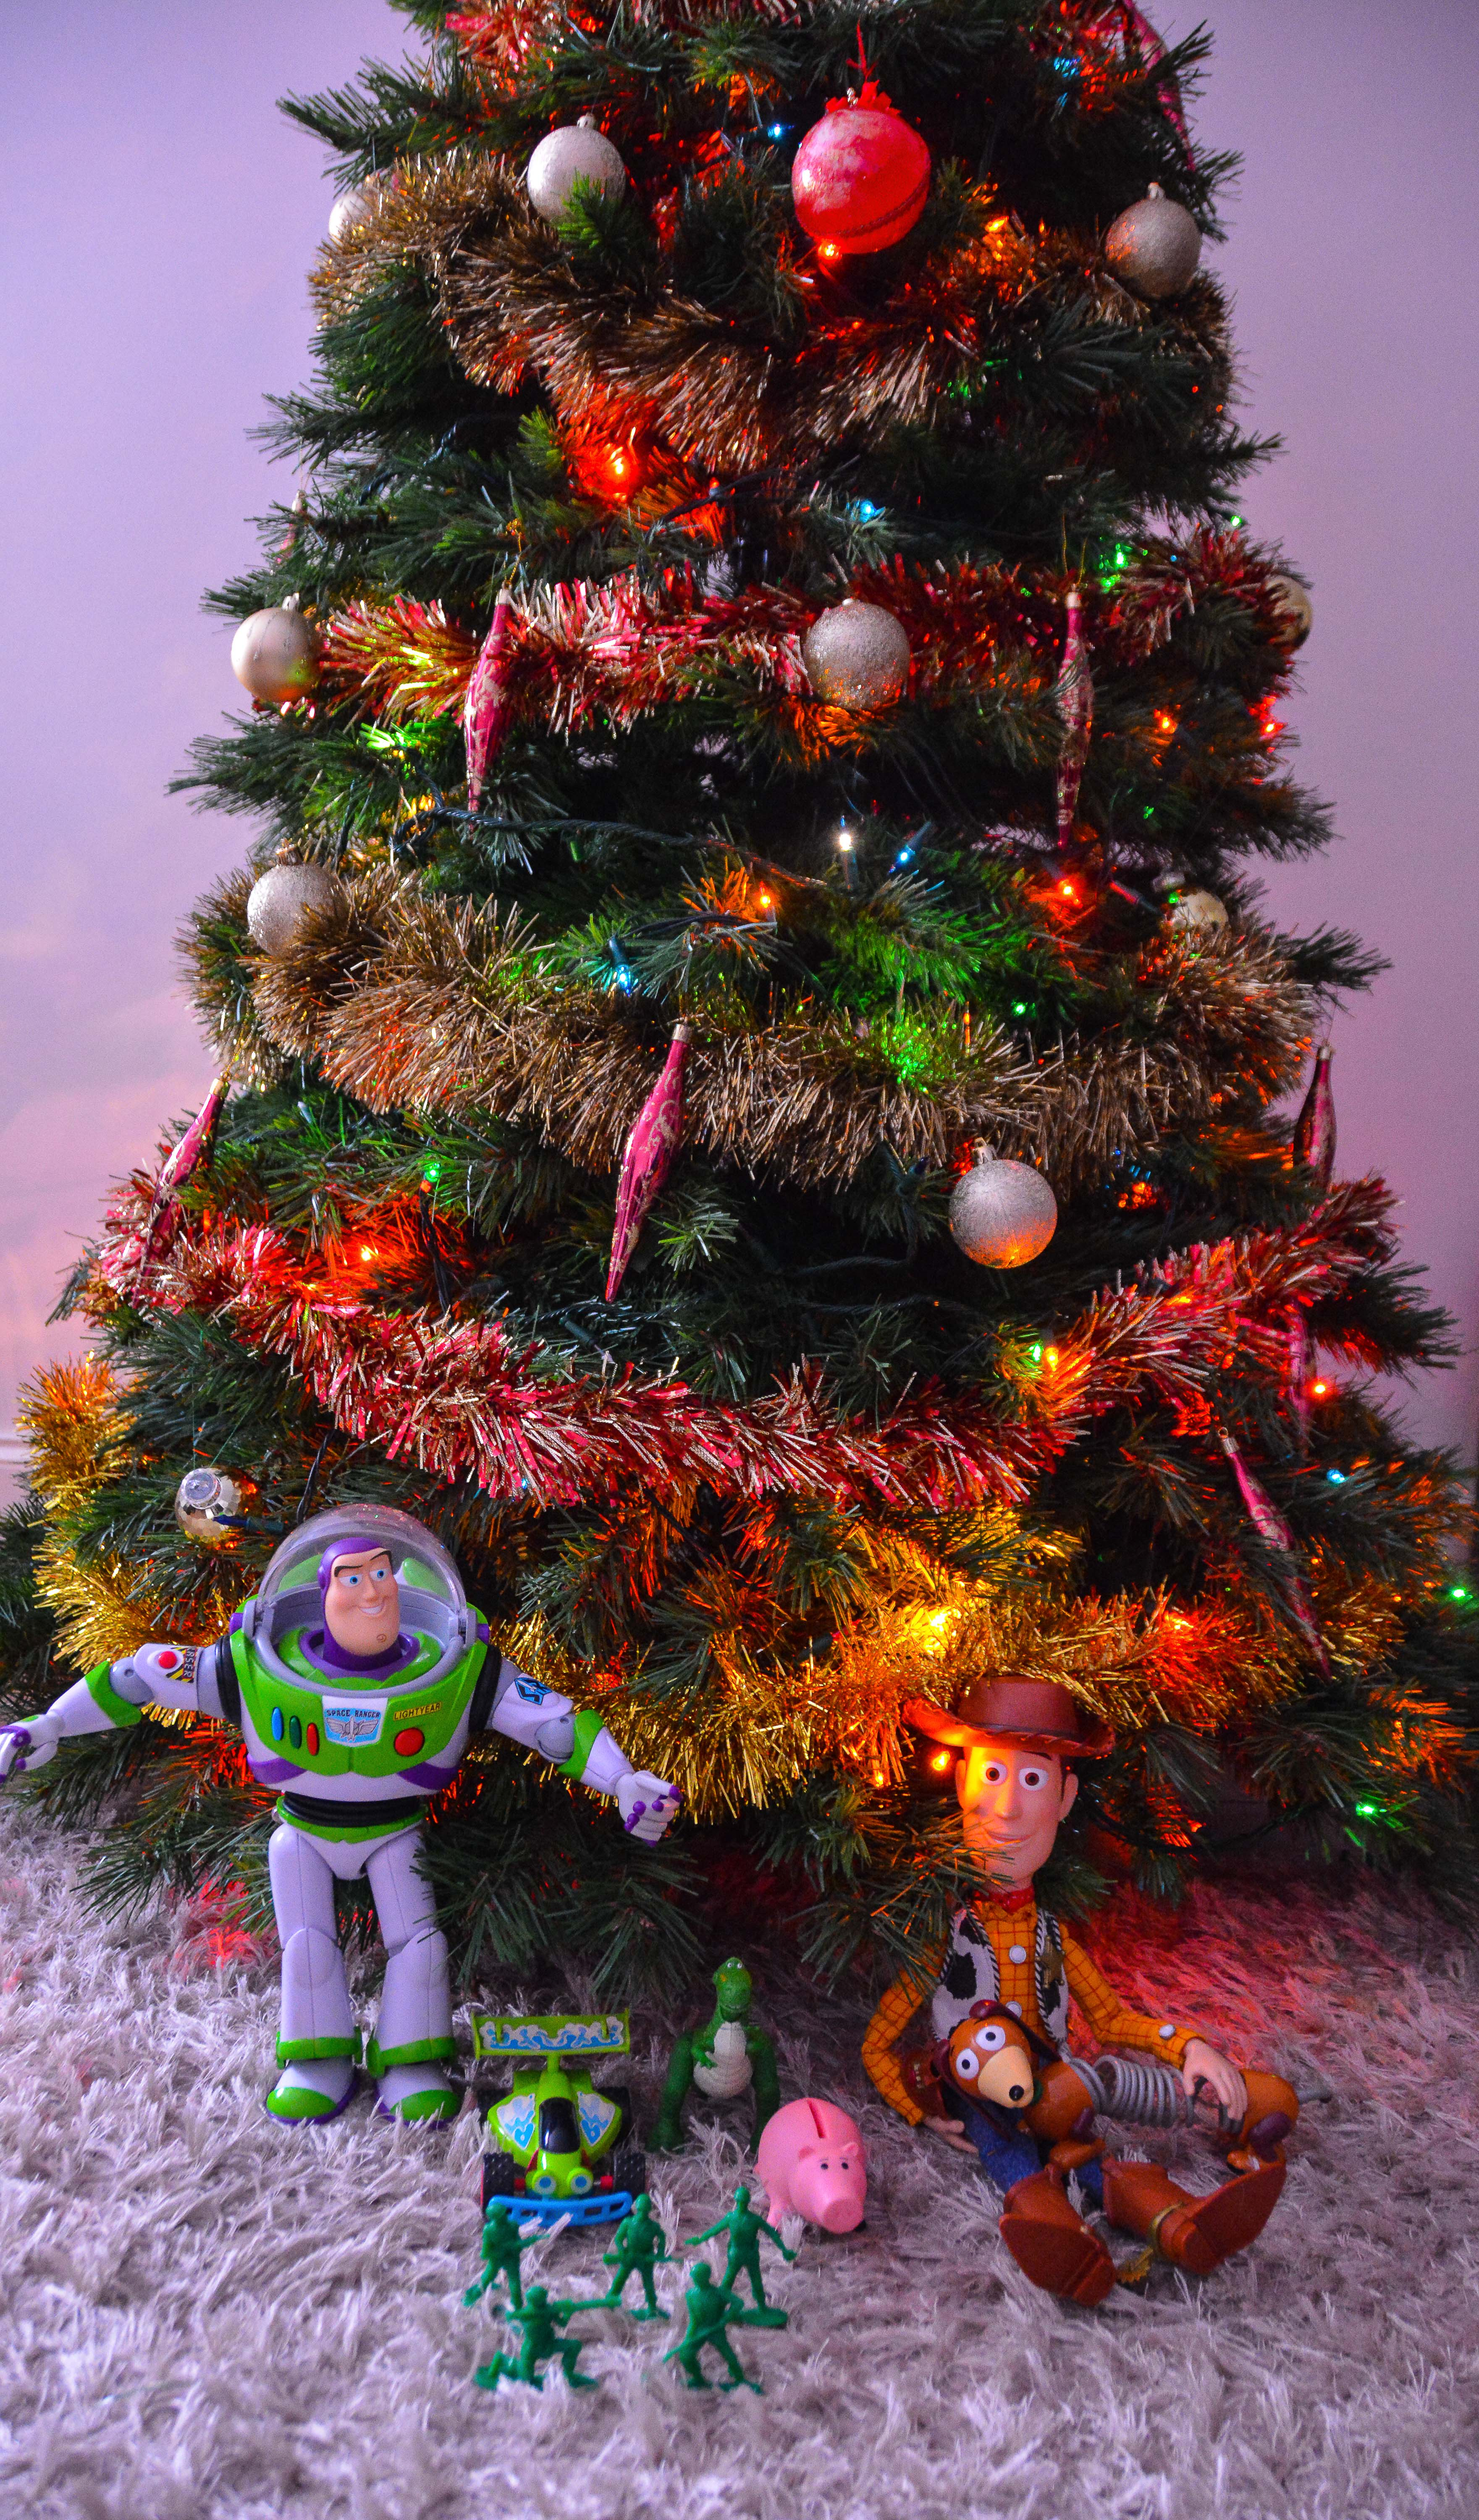 Toy Story Christmas : Toy story characters put up a christmas tree gallery